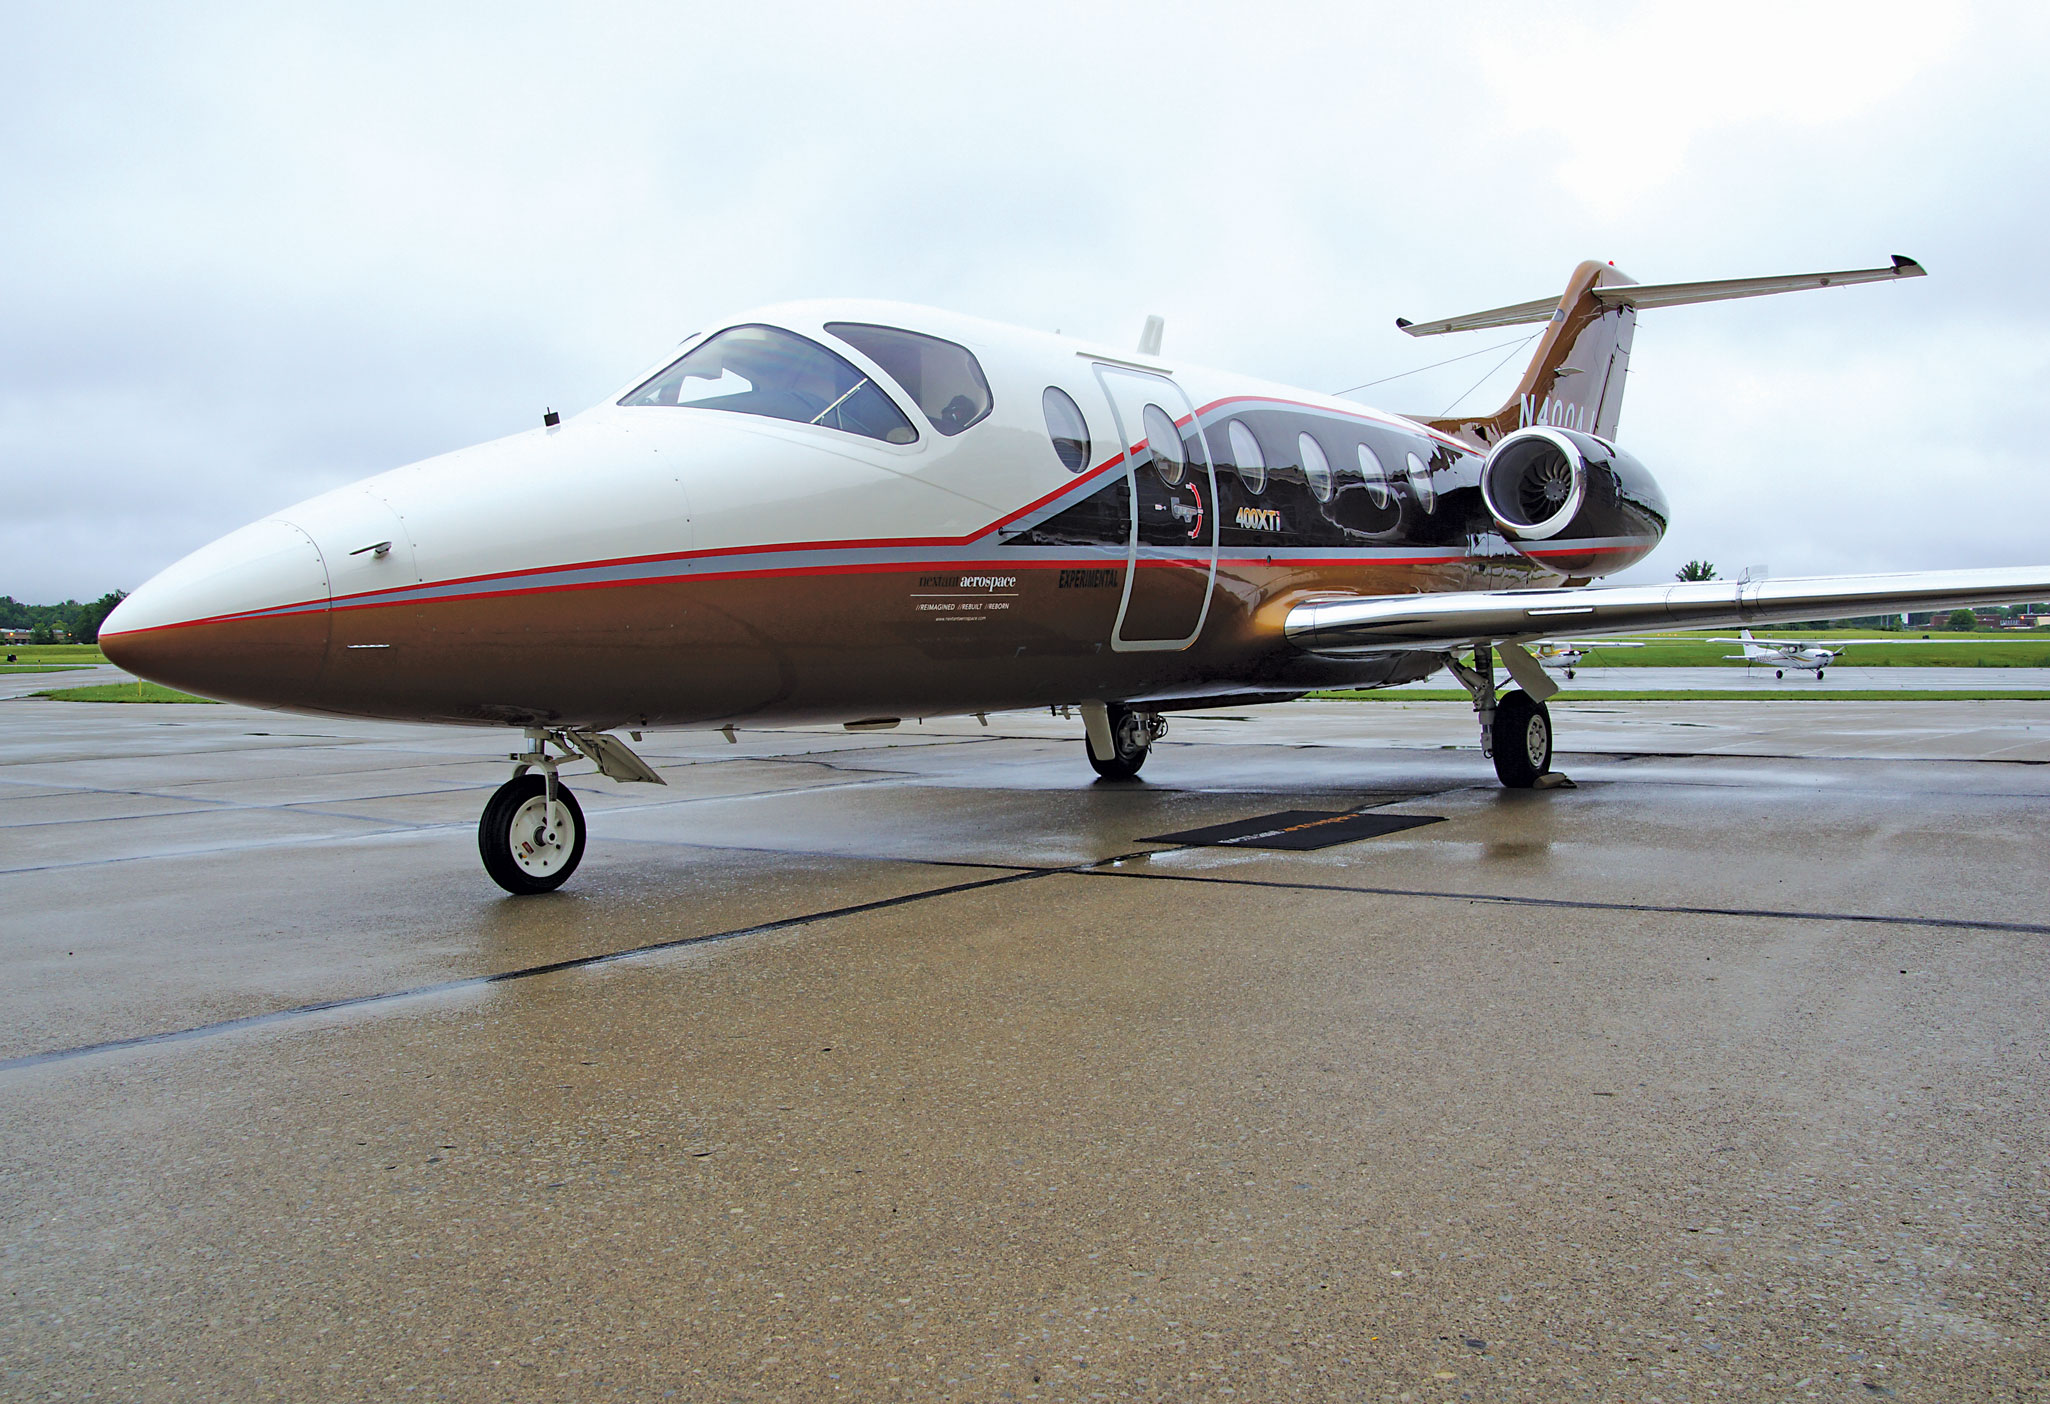 Nextant 400xti a beechjet made modern business aviation news nextant 400xti a beechjet made modern fandeluxe Image collections